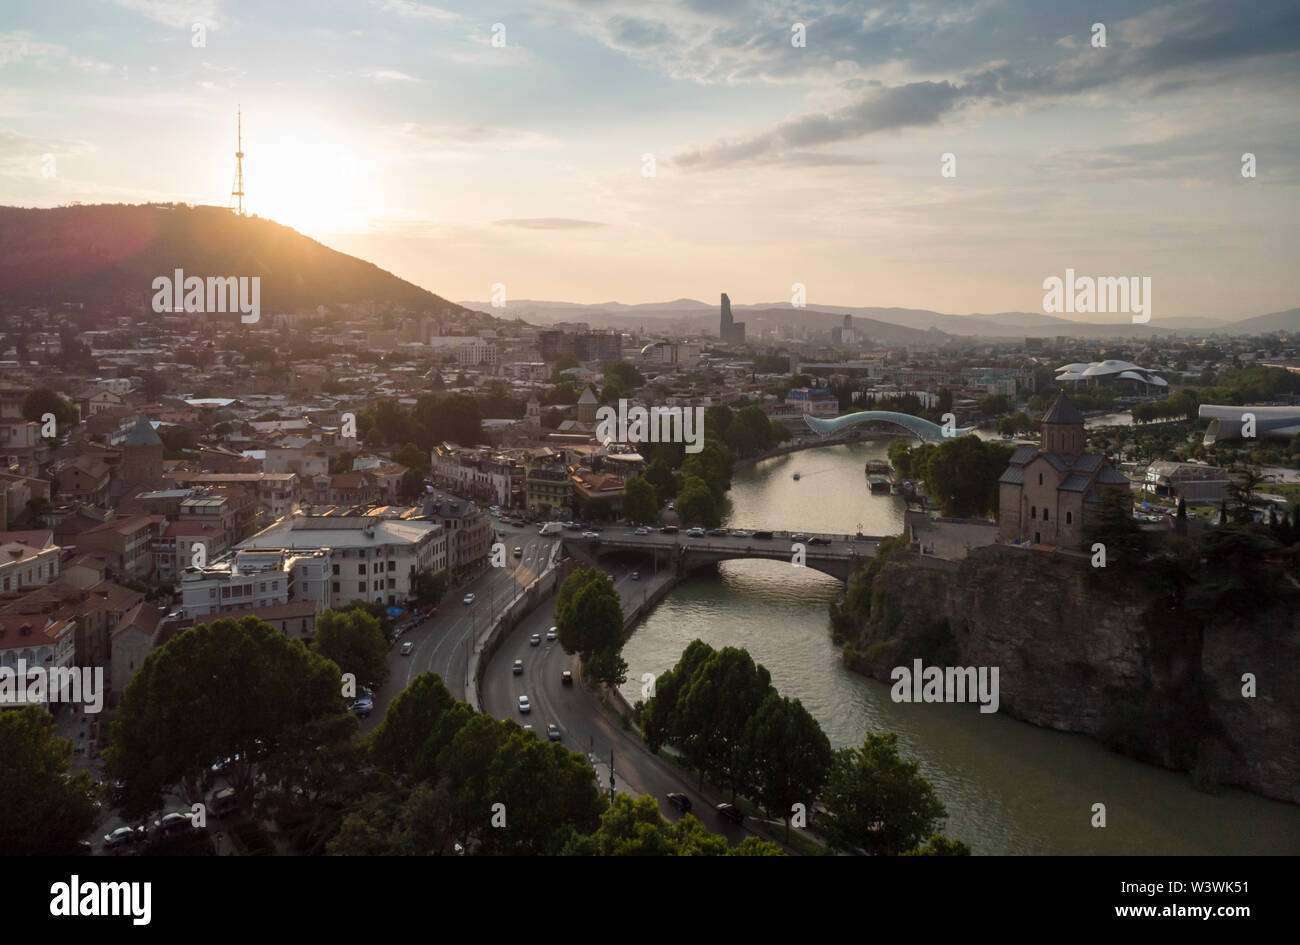 Aerial Cityscape of Tbilisi, Georgia, sunset and cityscape of Tbilisi, Georgia, view on the mountains on backround. - Stock Image